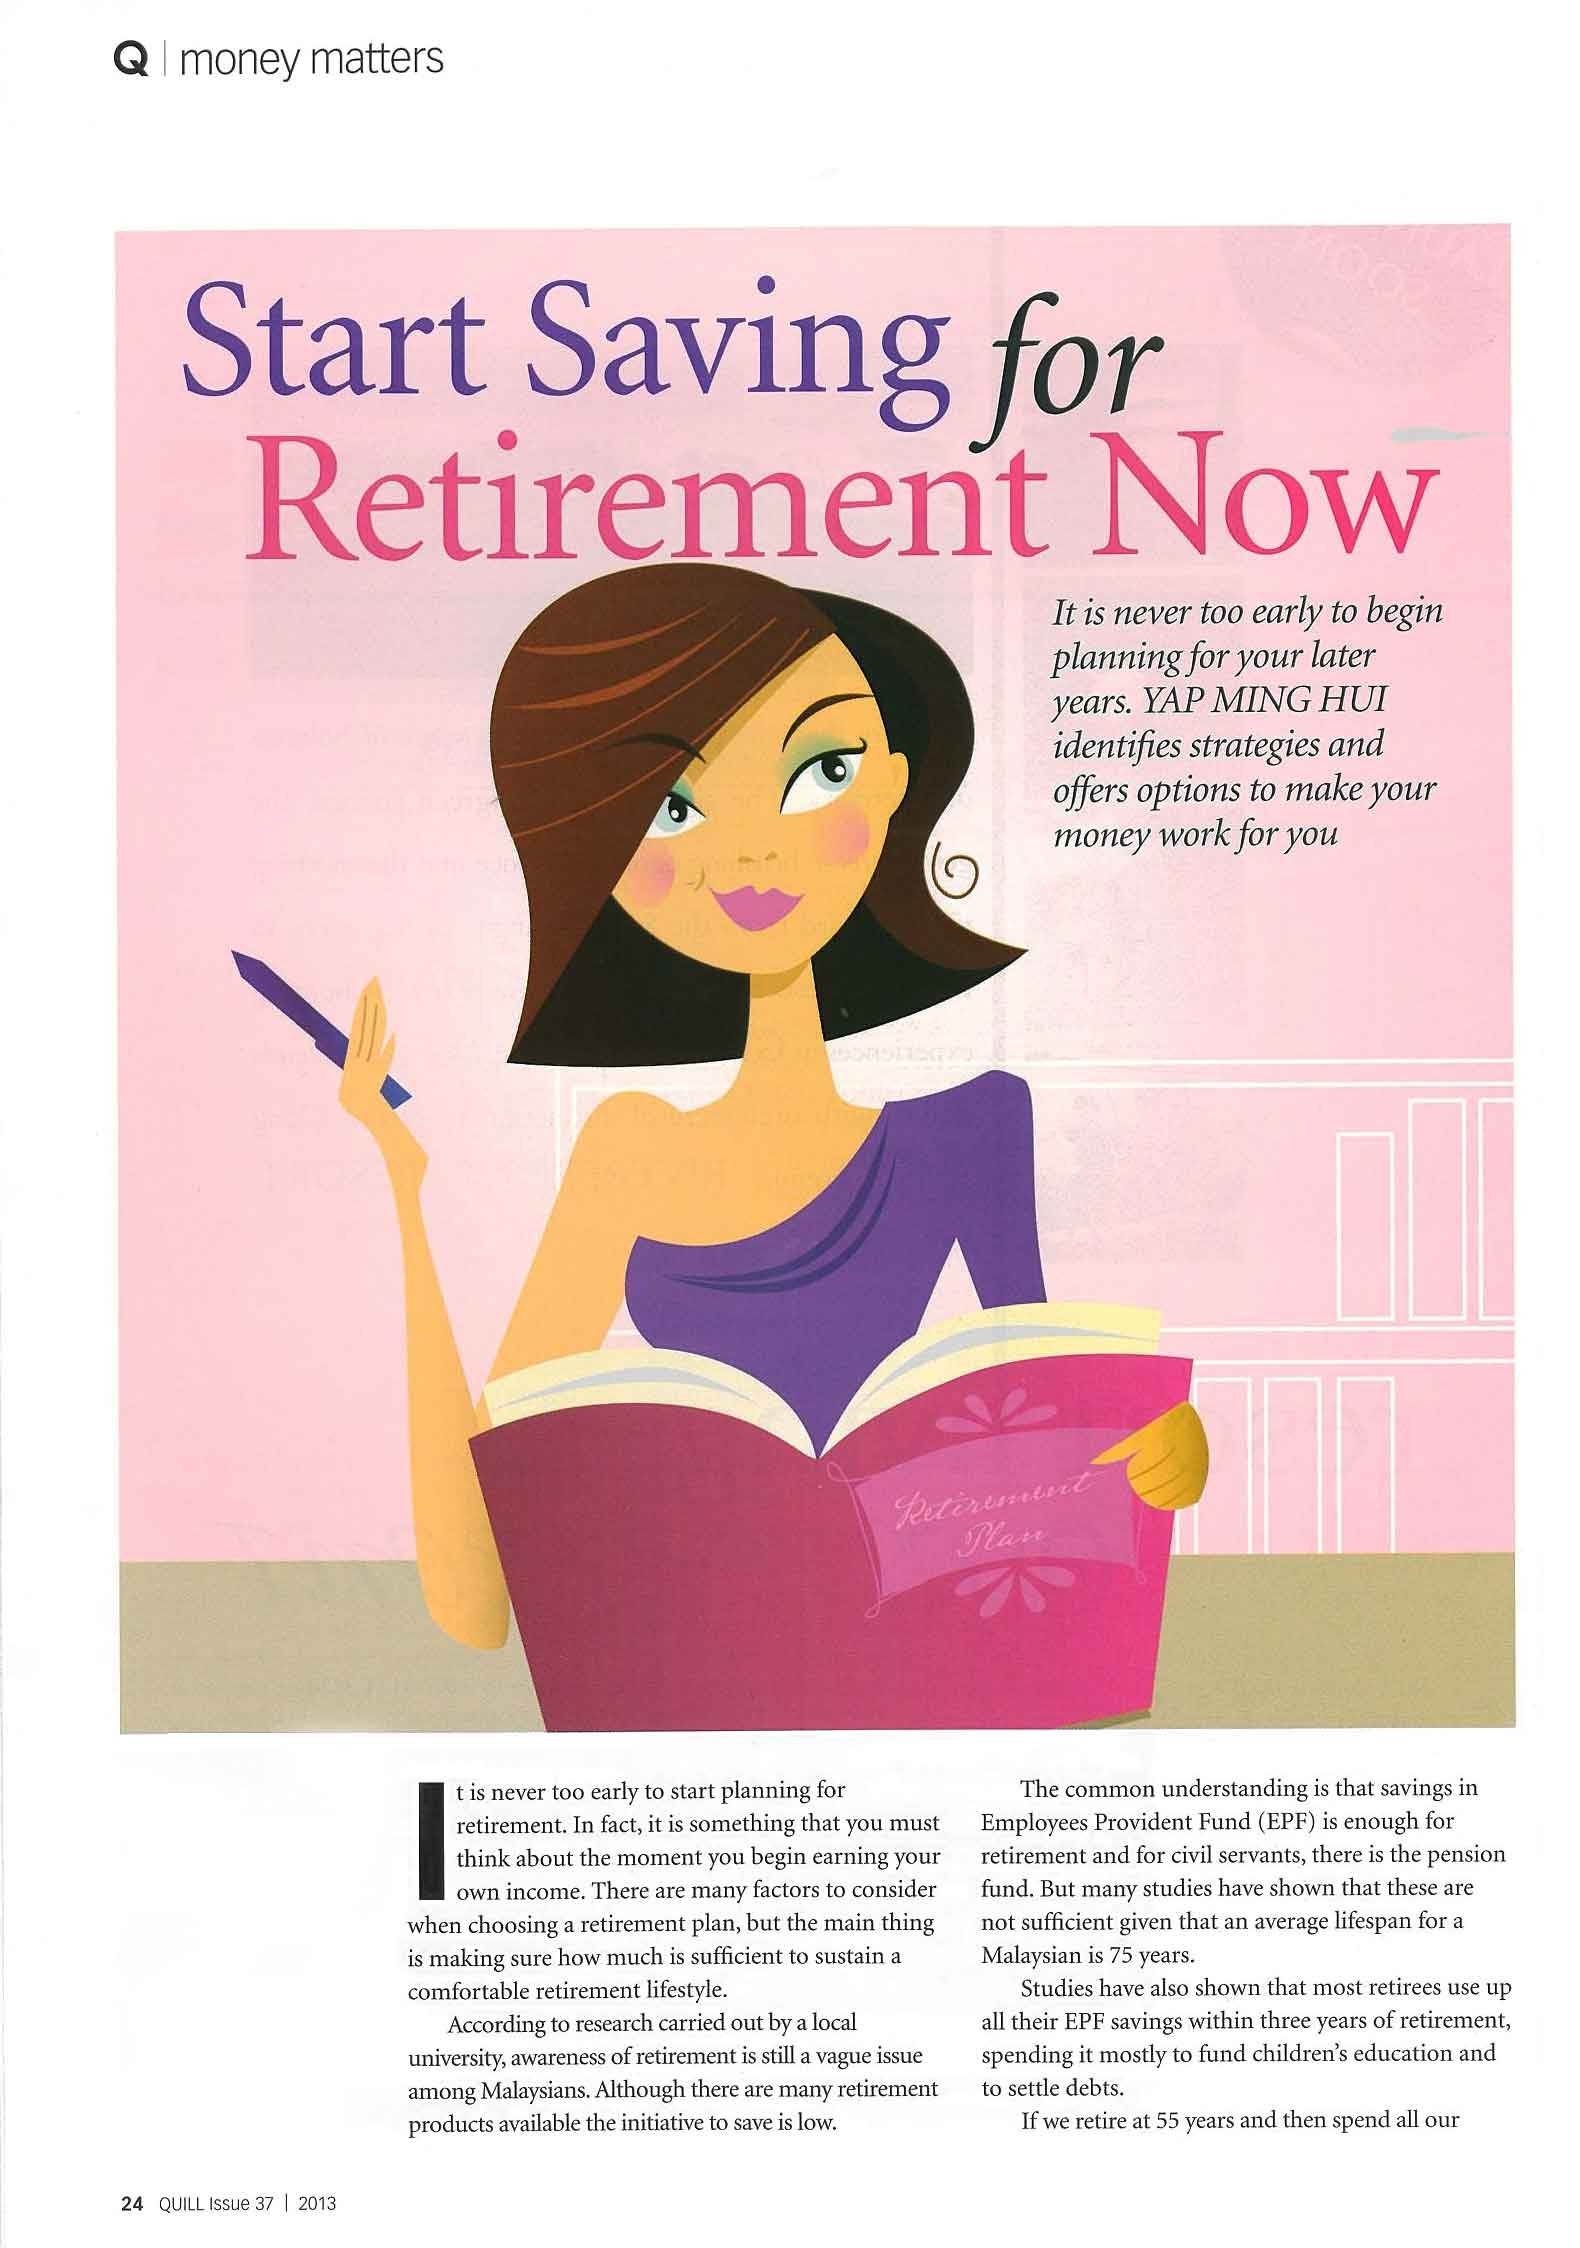 Start Saving for Retirement Now_part 1 - 01 Apr 2013